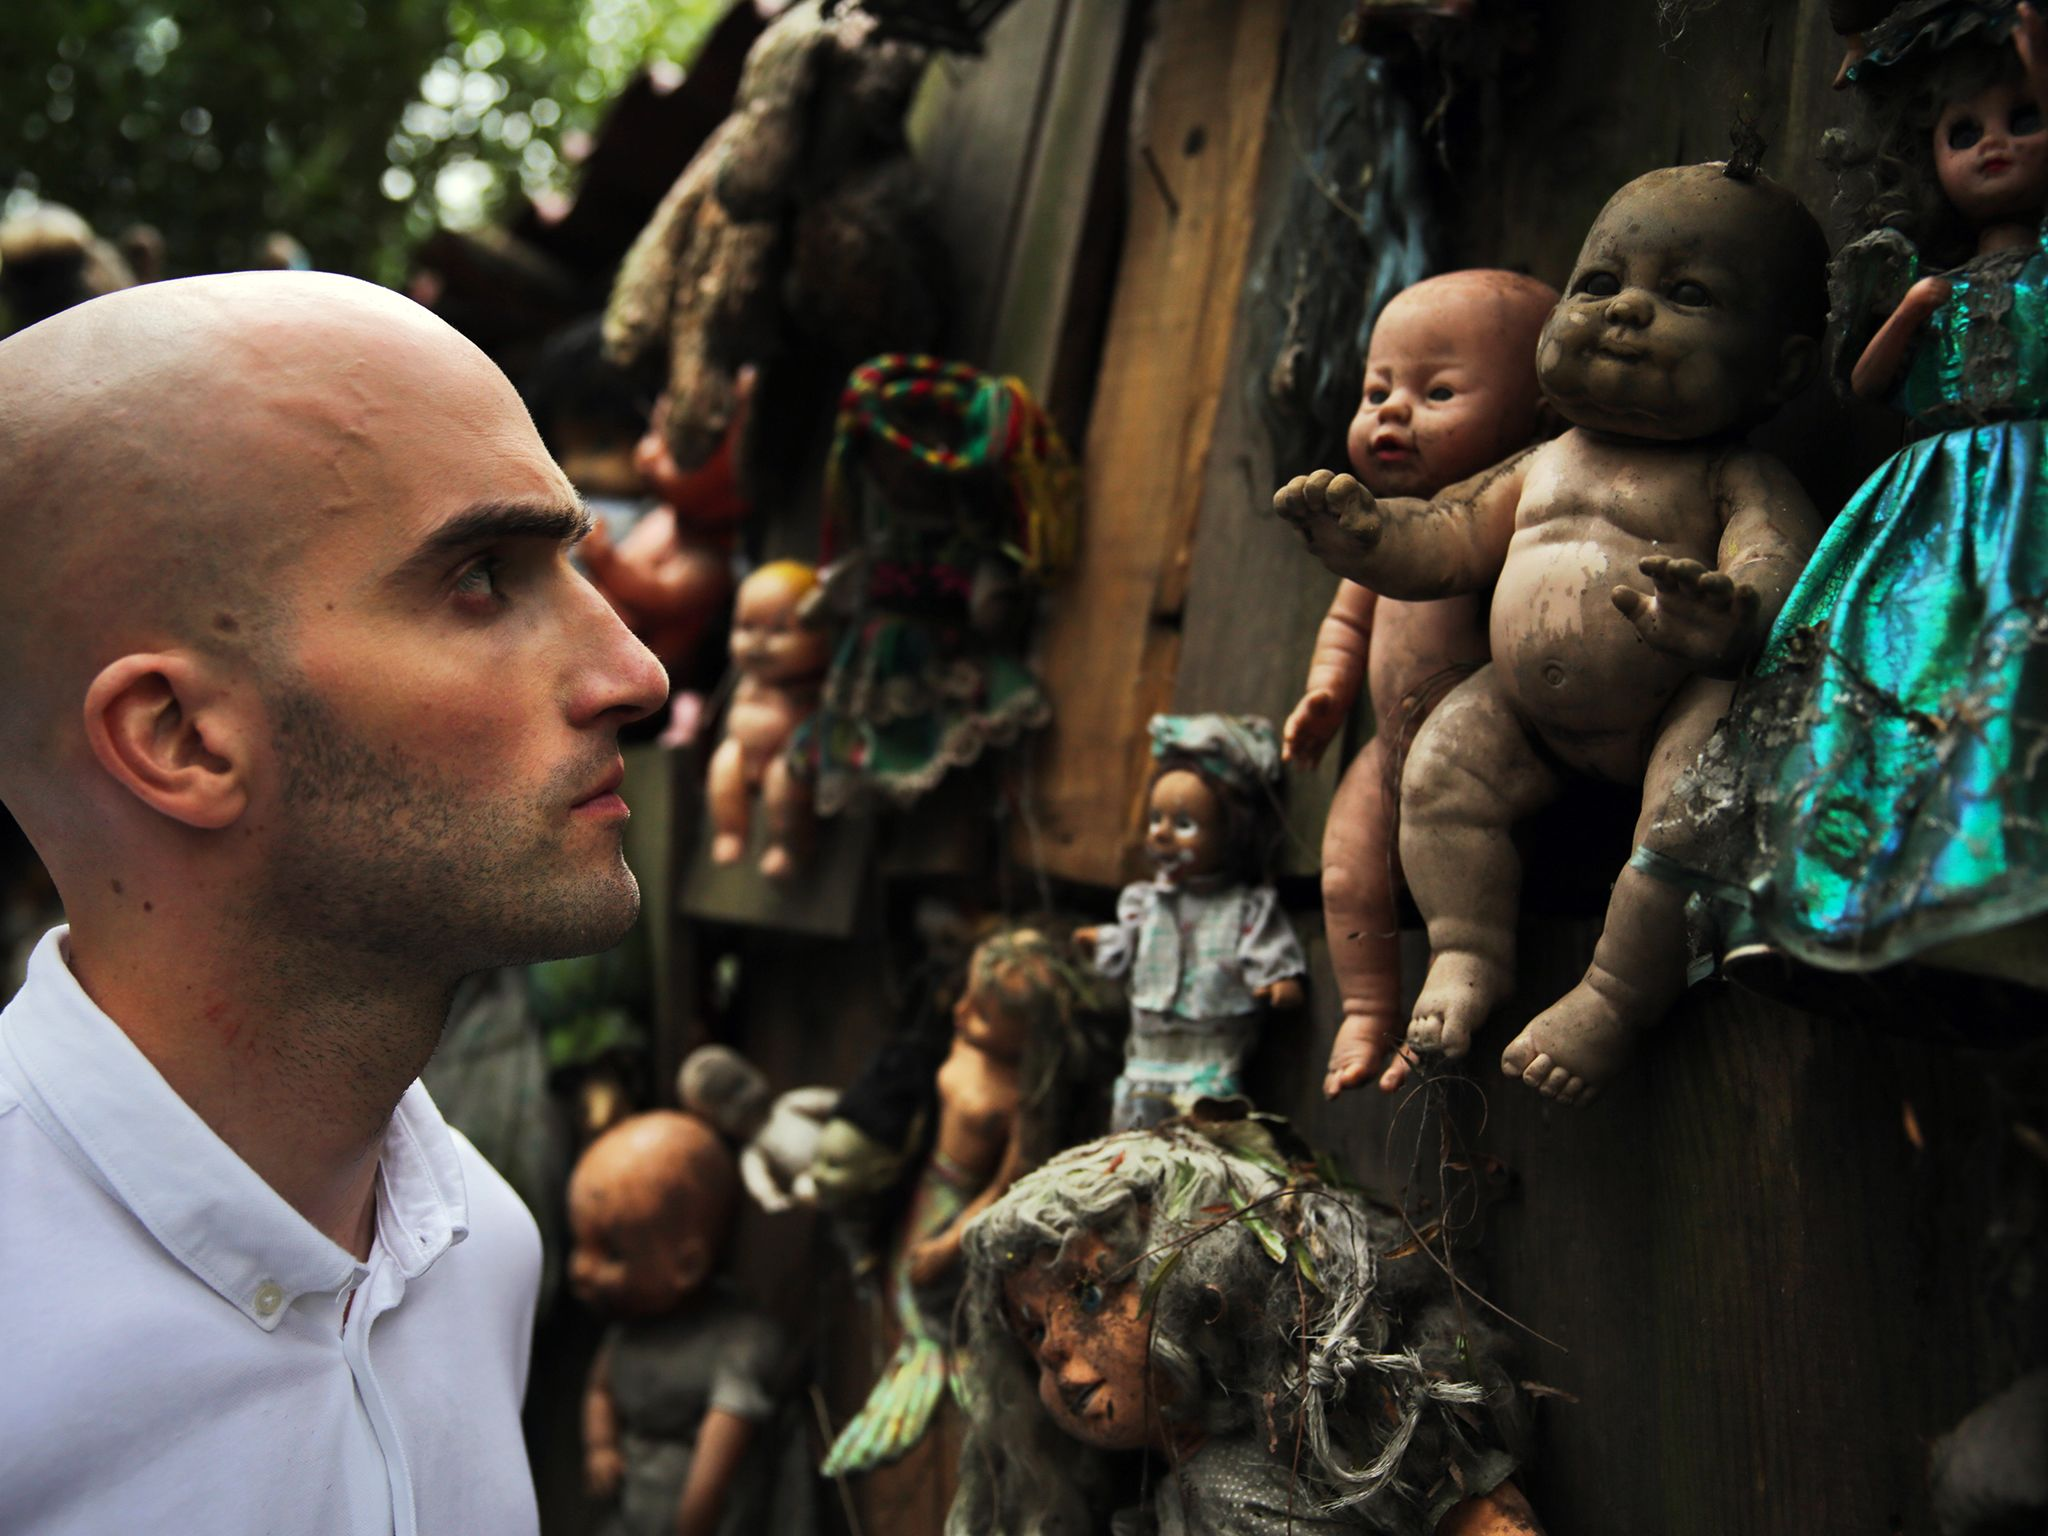 Isla de las Muñecas, Mexico City, Mexico -  DMC at Doll Island among dolls and trees. In the p... [Dagens foto - november 2014]